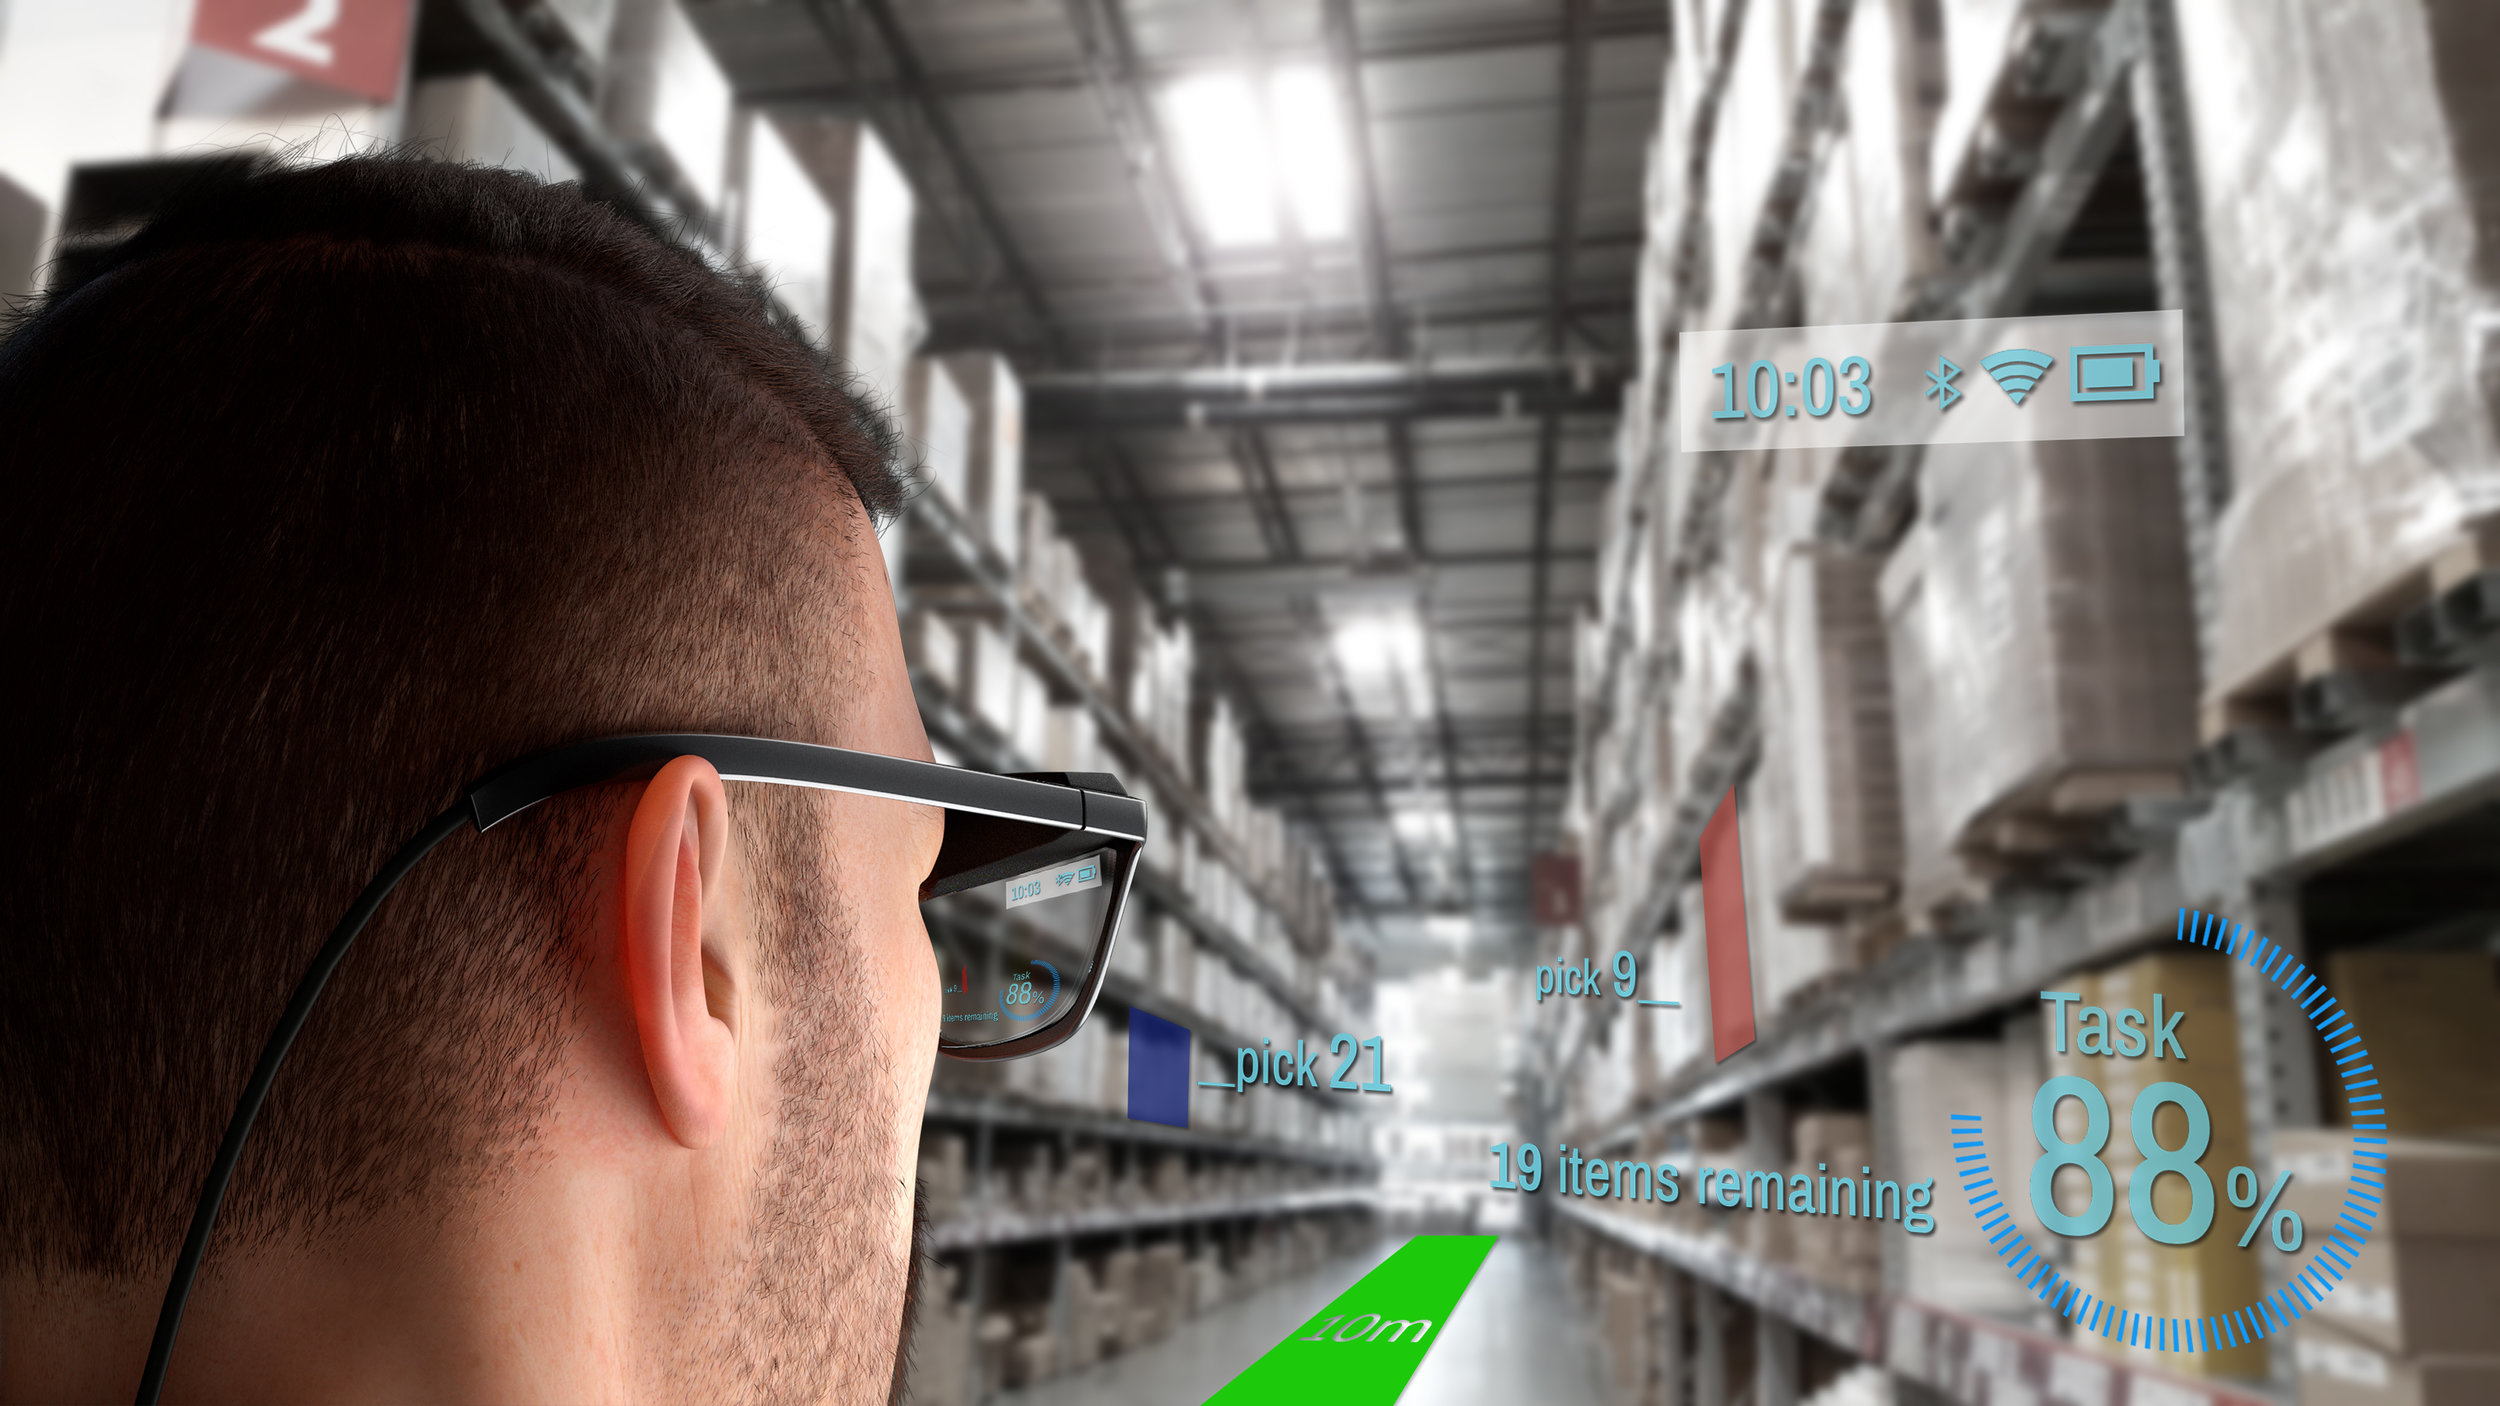 Simulated view of a warehouse scenario view as seen through the men's concept WaveOptics glasses